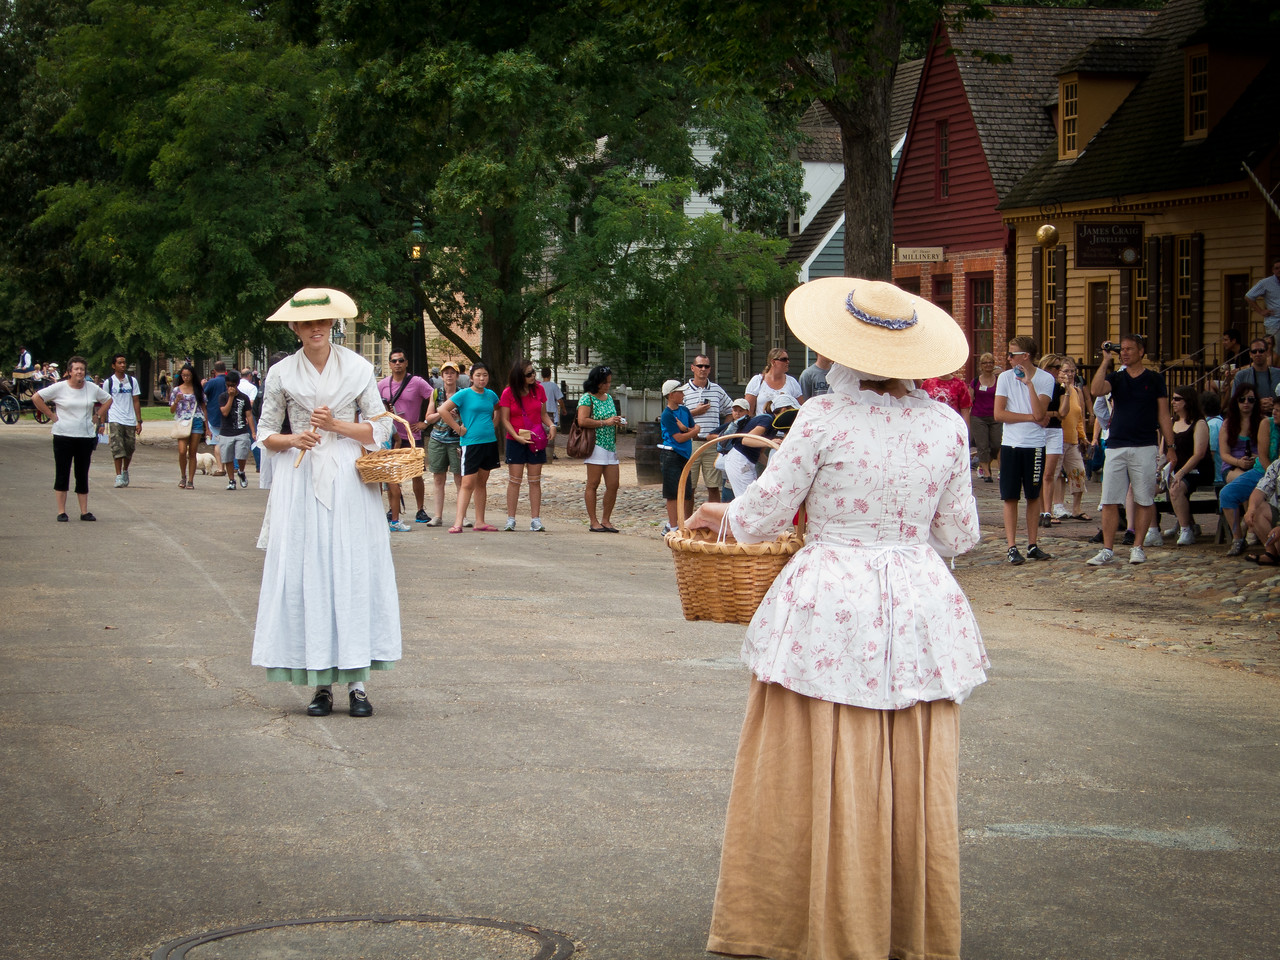 Street performers at Colonial Williamsburg